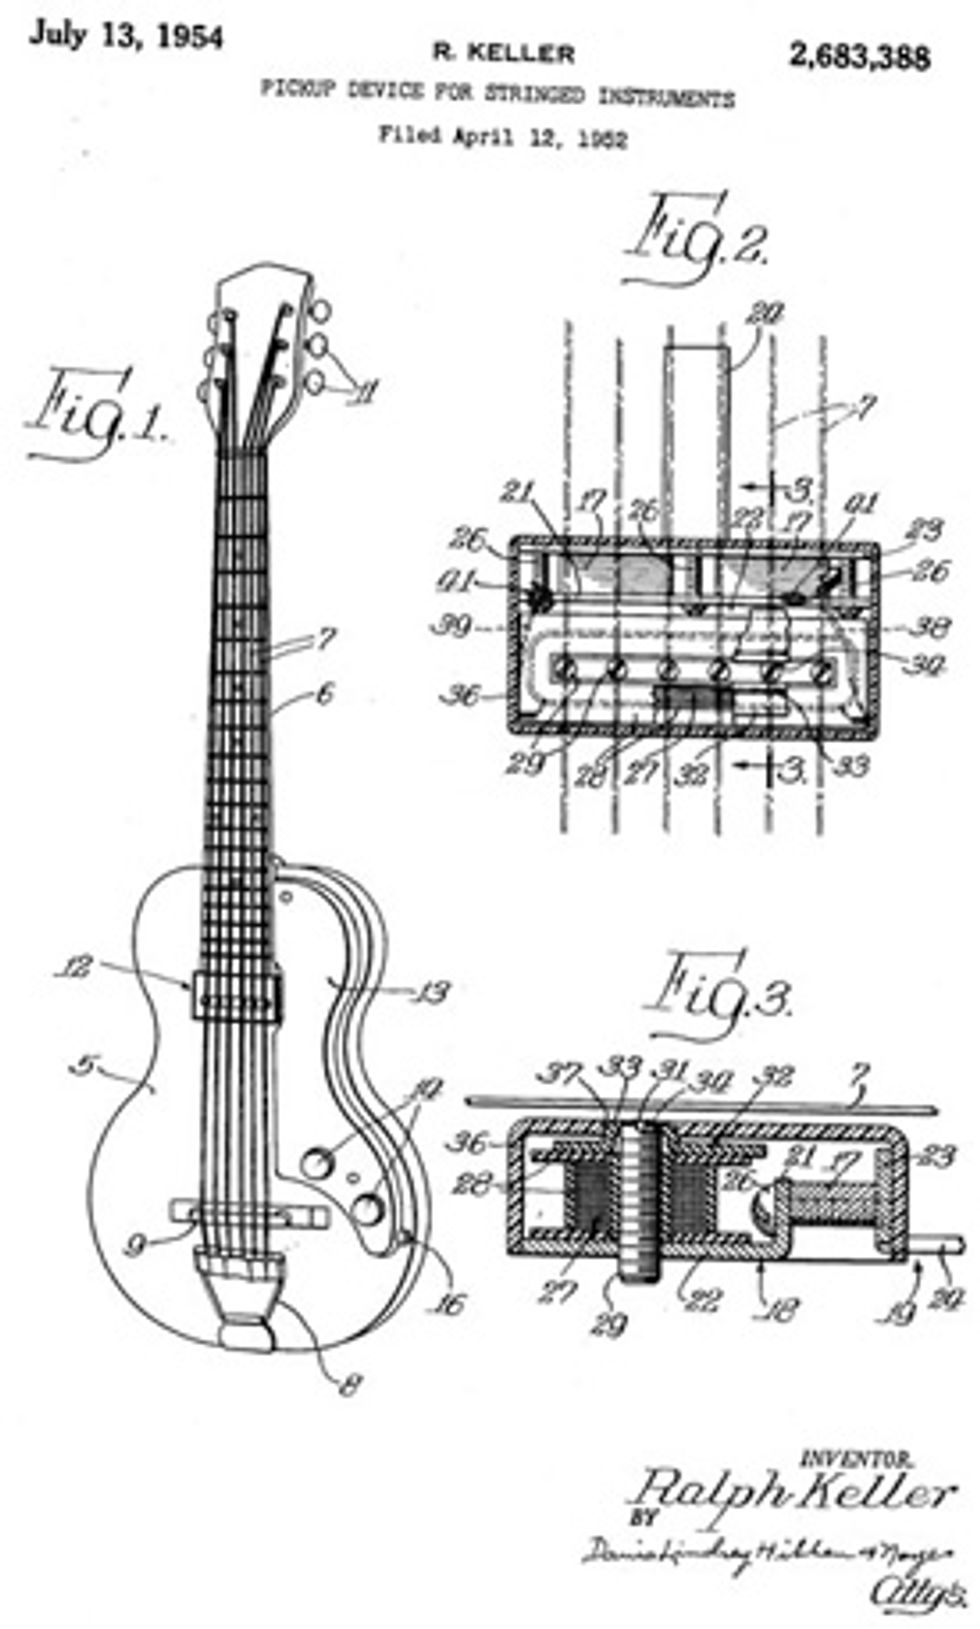 wiring diagram schematics for stratocaster with Kingston Guitar Single Coil Pickup Wire Diagram on Fender Pj B Wiring Diagram additionally Jaguar Wiring Diagram 64 further Vintage Gibson Wiring Diagrams furthermore Wiring Diagram Single P90 together with Jackson Humbucker Wiring Diagram.